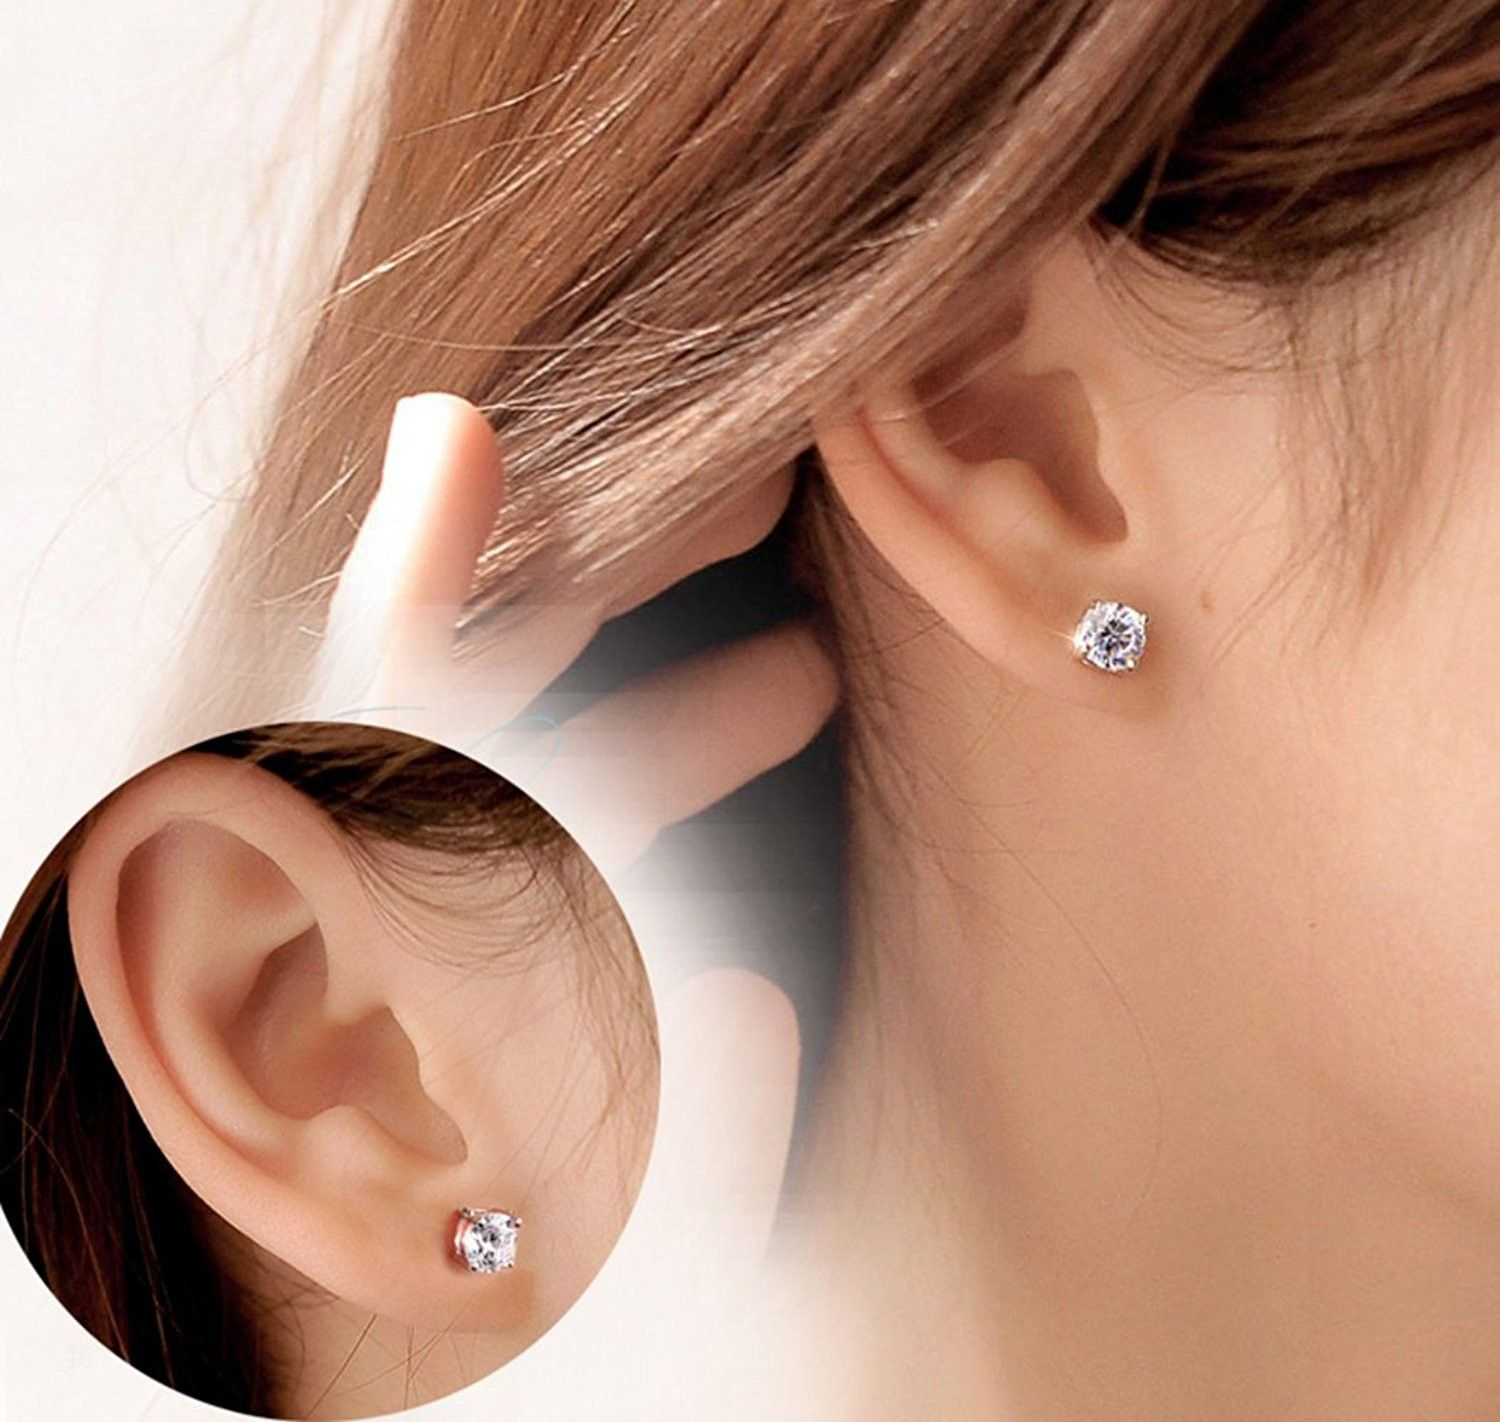 Pin On Earrings Women Fashion